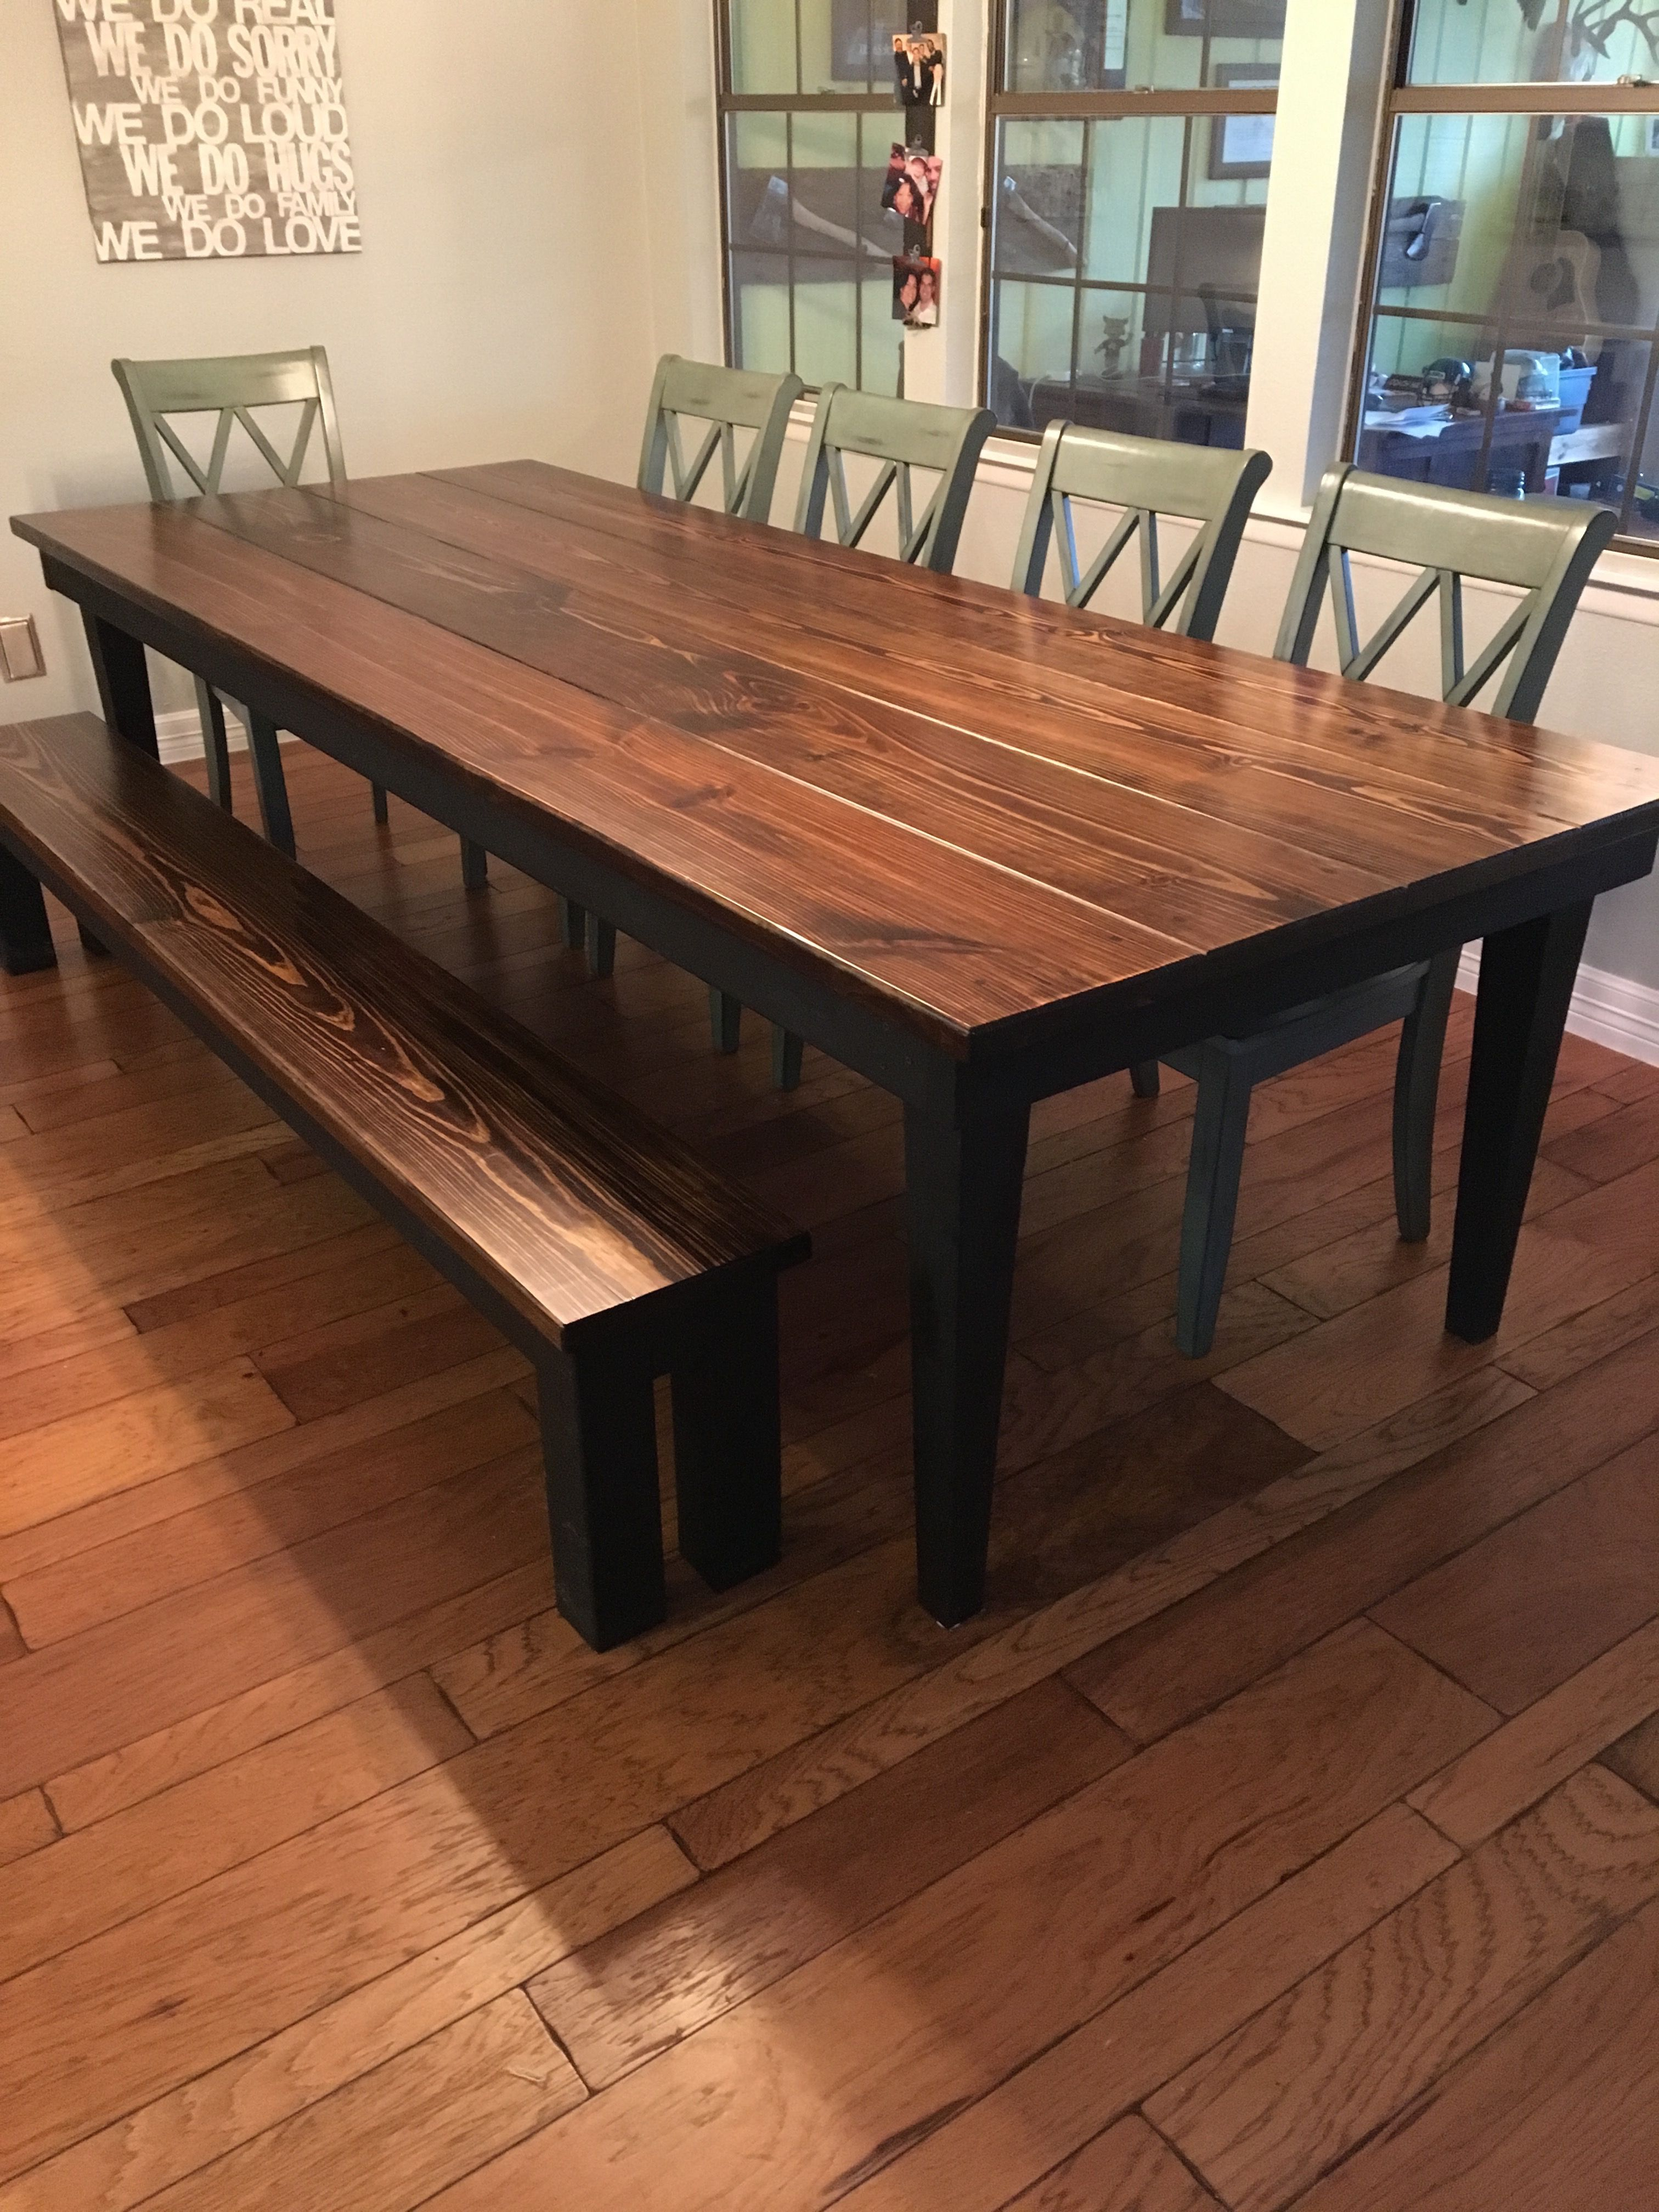 james james 9 39 x42 farmhouse table with a traditional top stained in vintage dark walnut and a. Black Bedroom Furniture Sets. Home Design Ideas